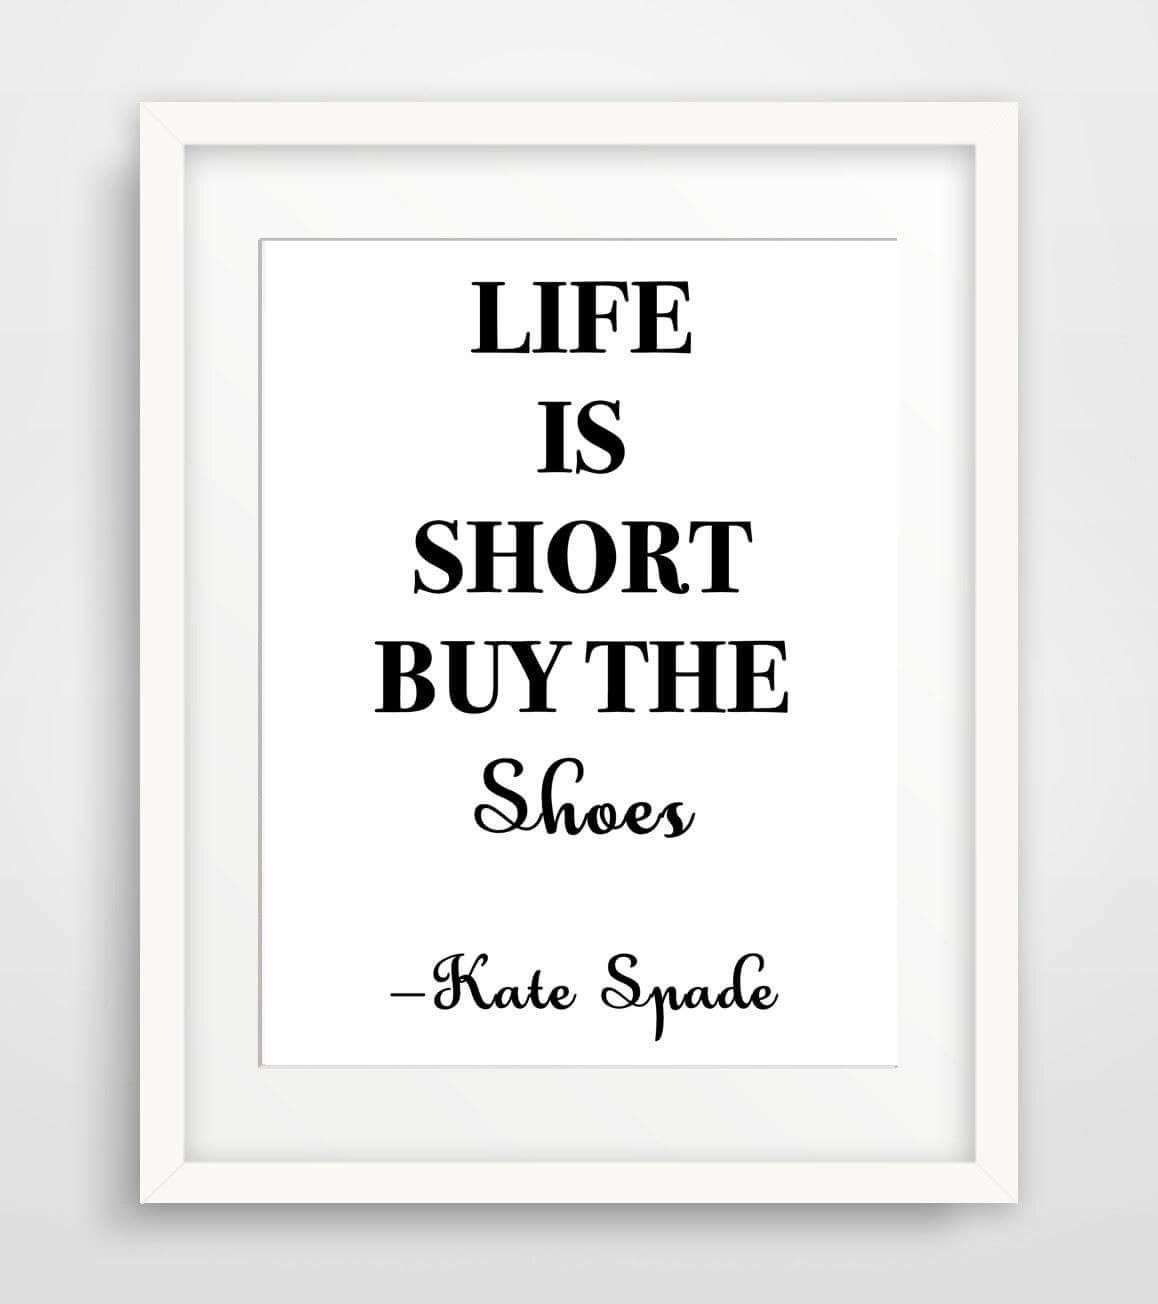 Finest Kate spade print quote inspired decor printable wall art poster  QR86